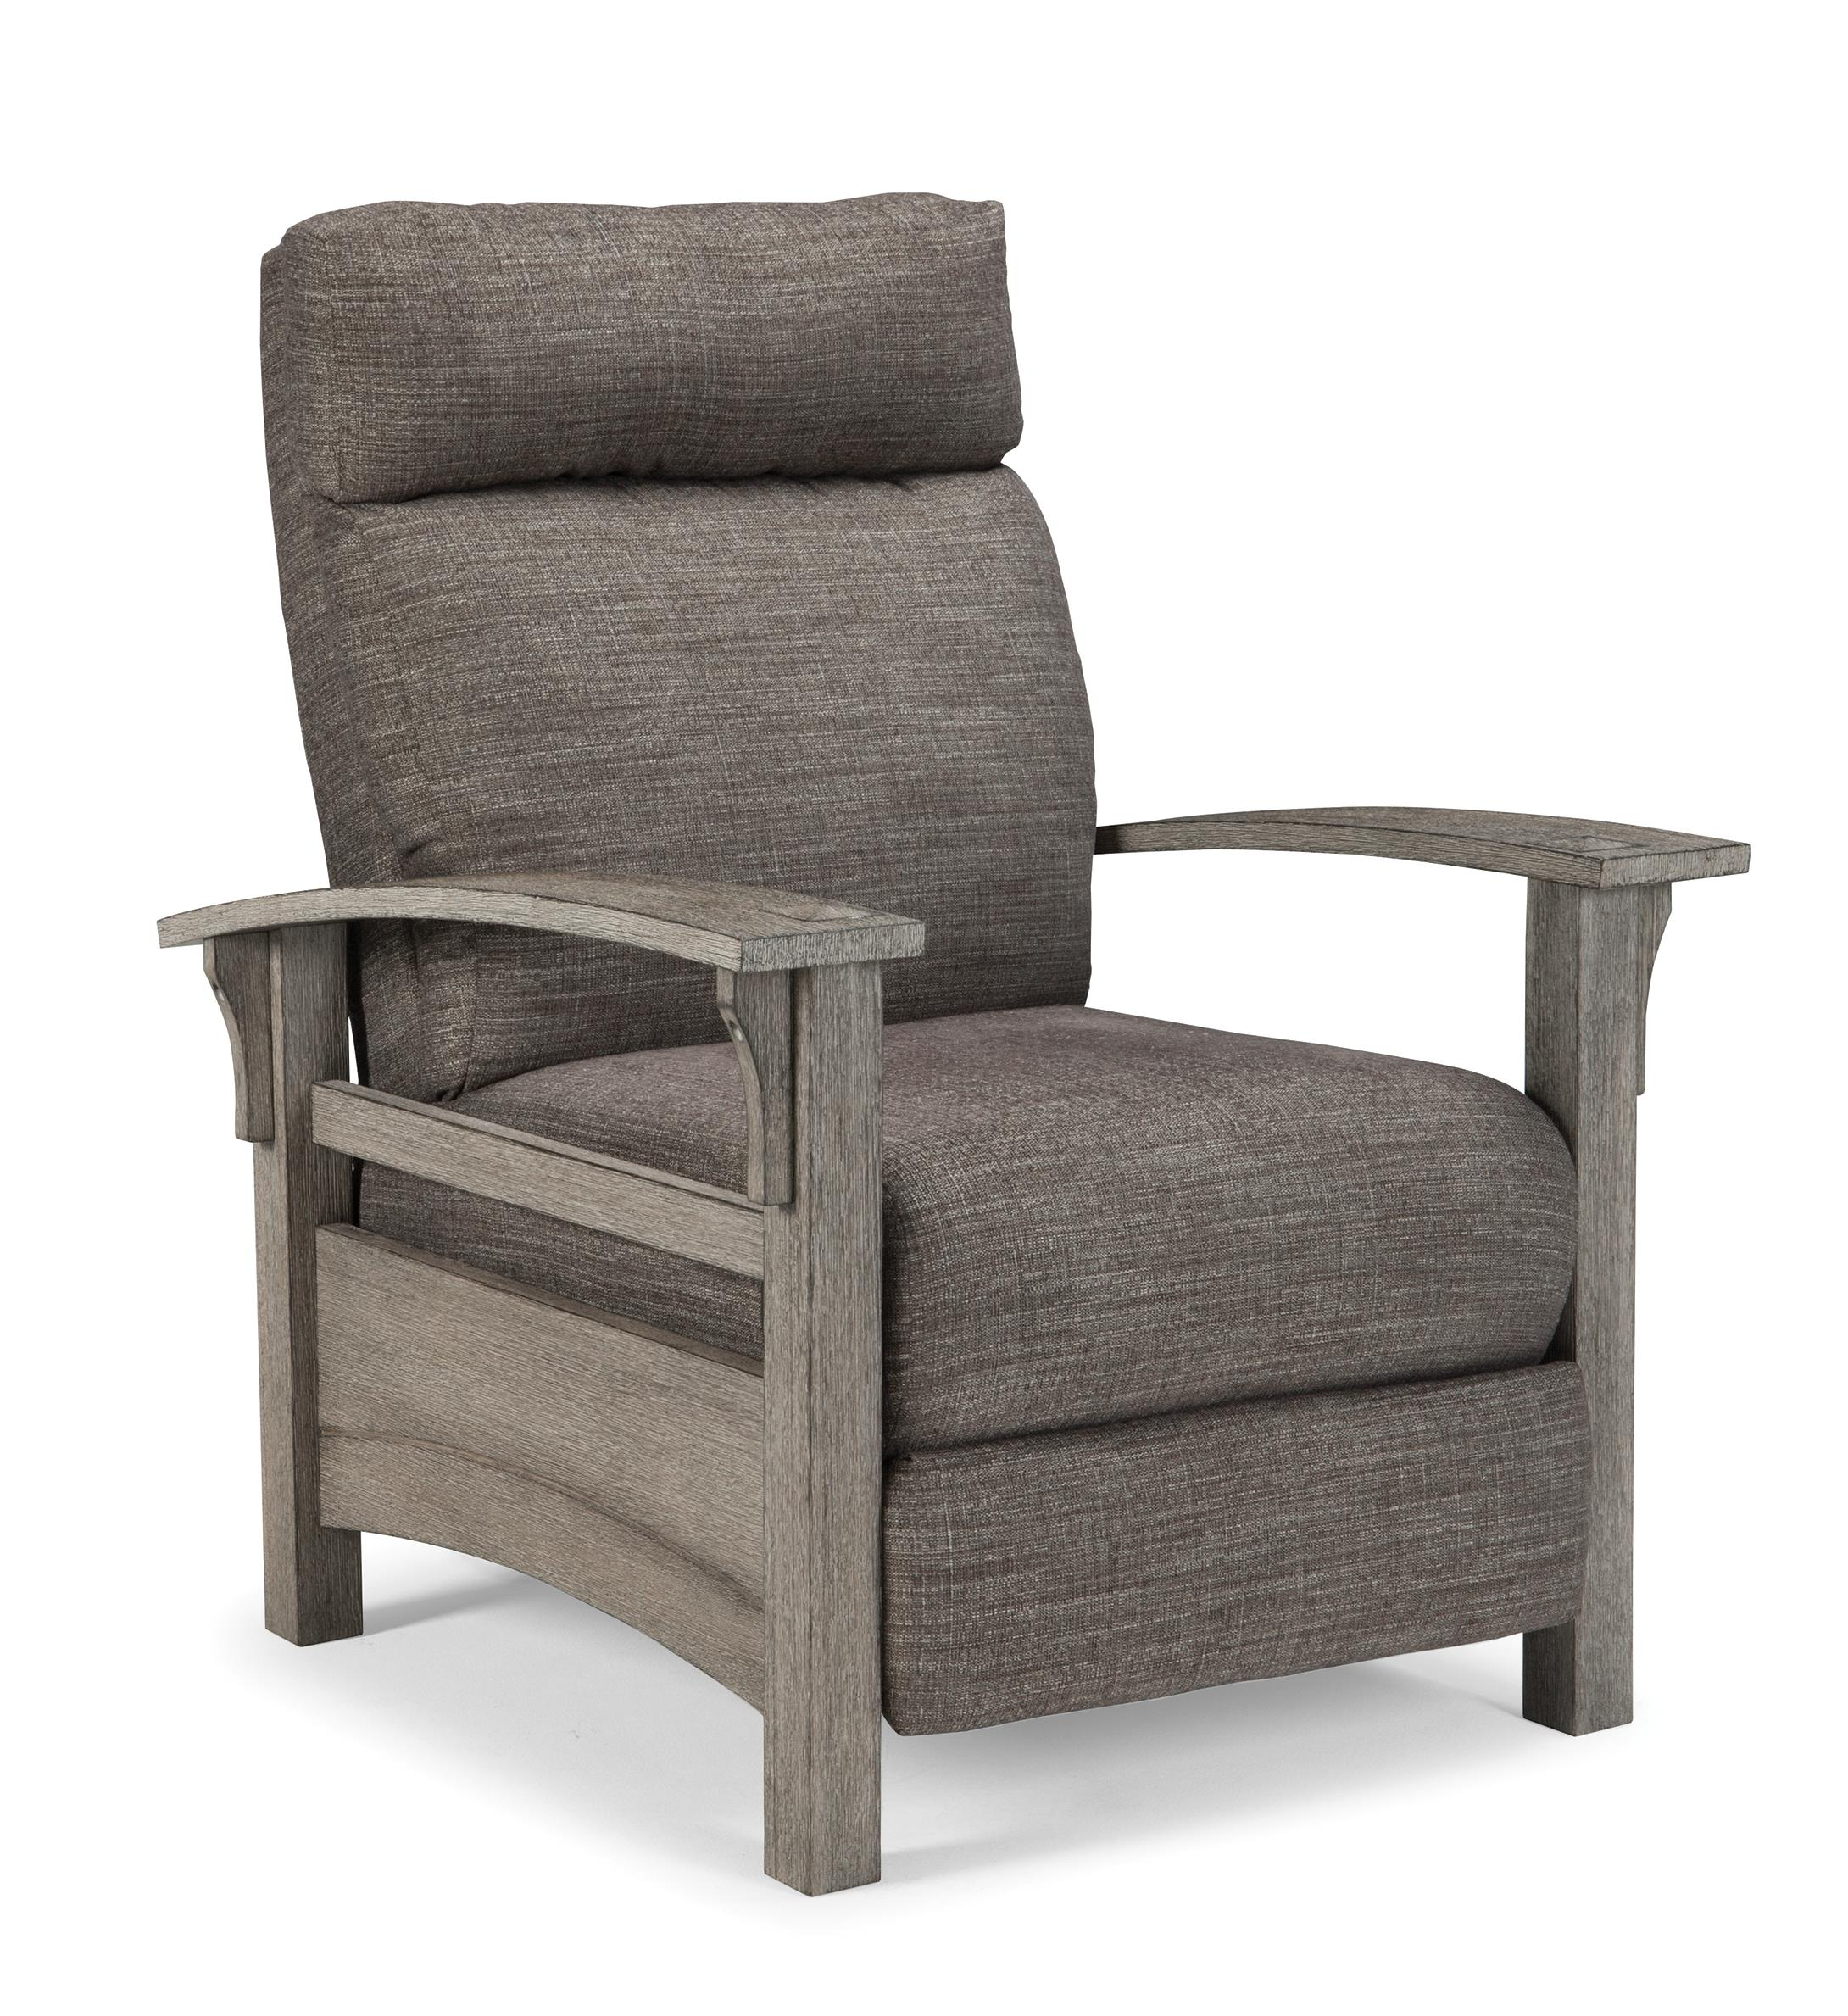 ferguson la recliner furniture product eldorado granite leg low high boy z